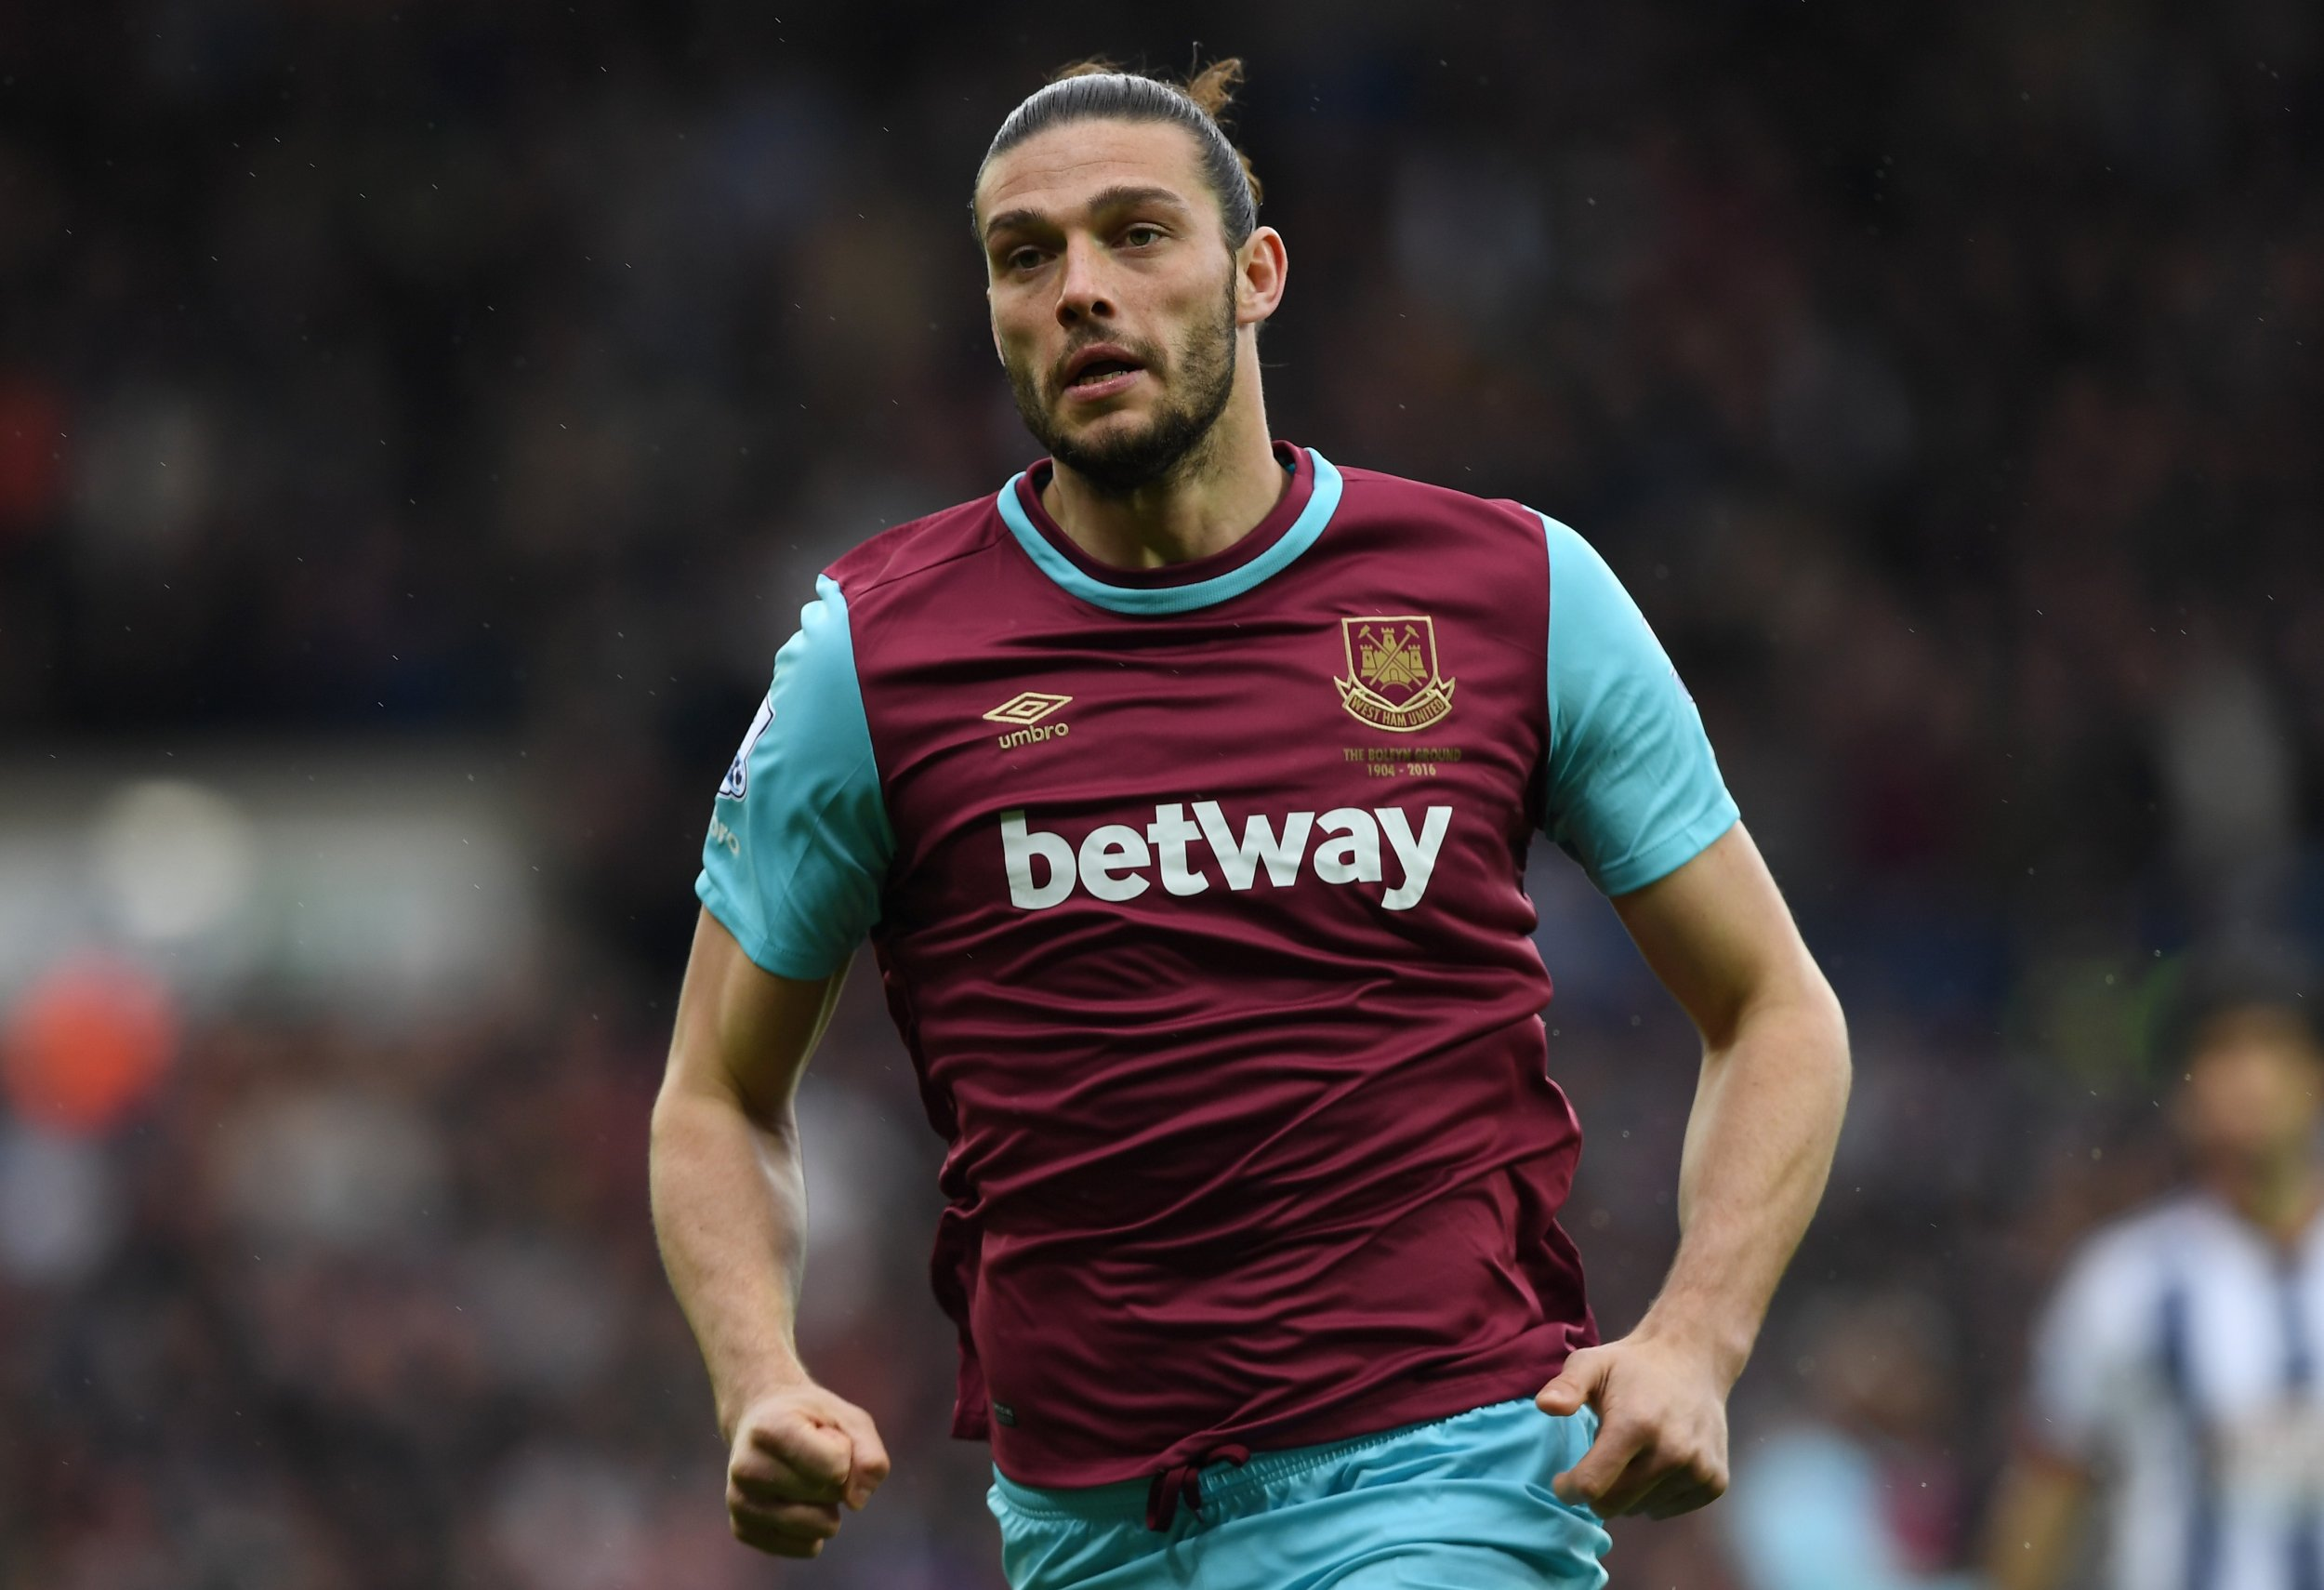 Premier League Footballer Andy Carroll Chased By Armed Motorcyclists